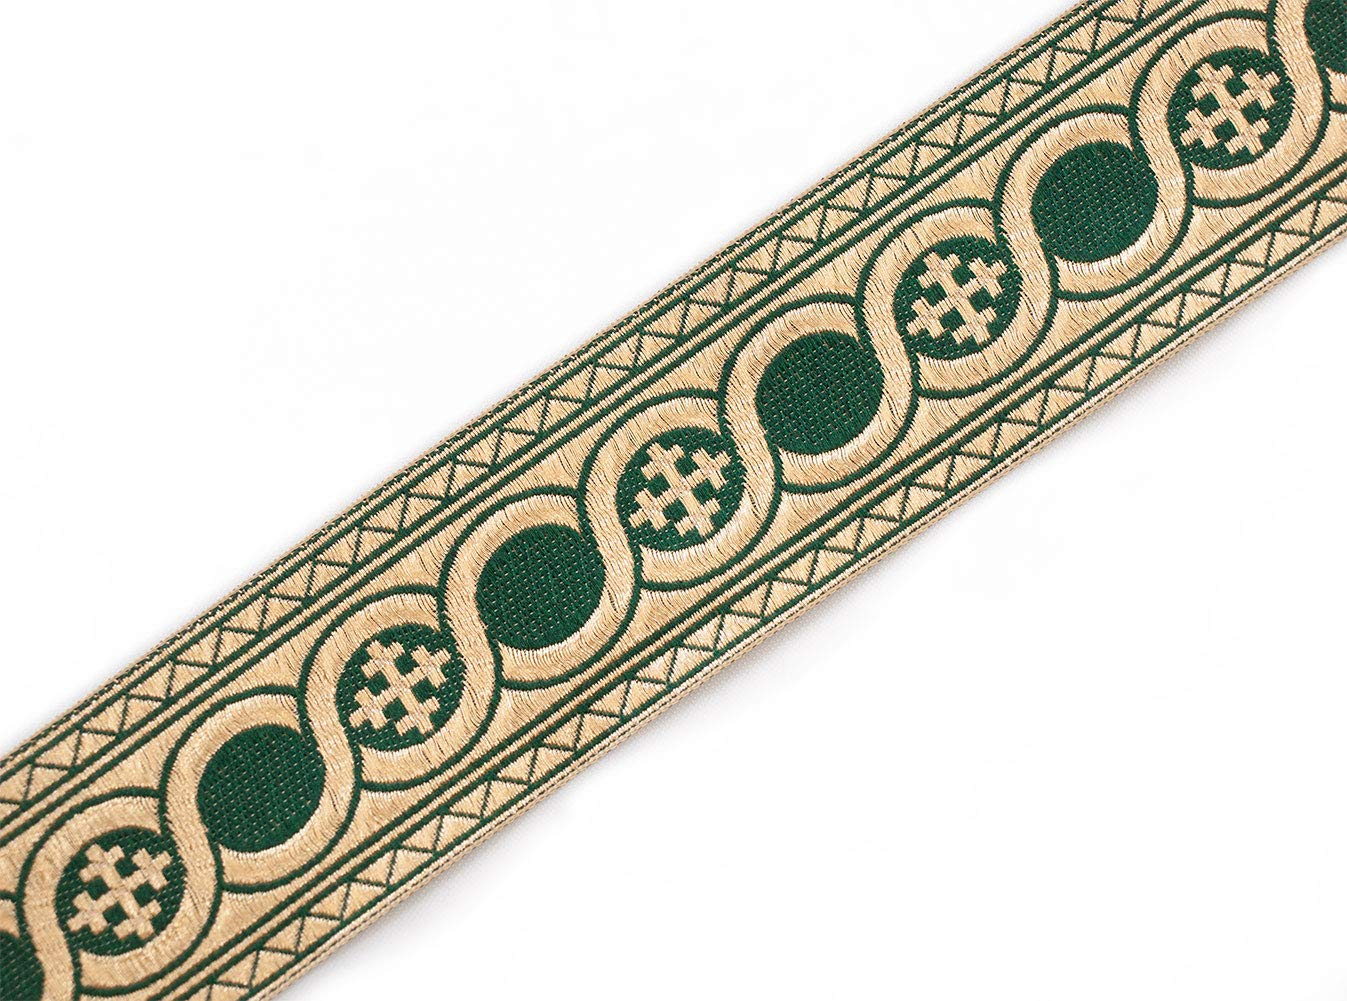 21//4 Wide Forrest Green Gold Jacquard Vestment Trim Cross Celtic Scroll 3 Yds